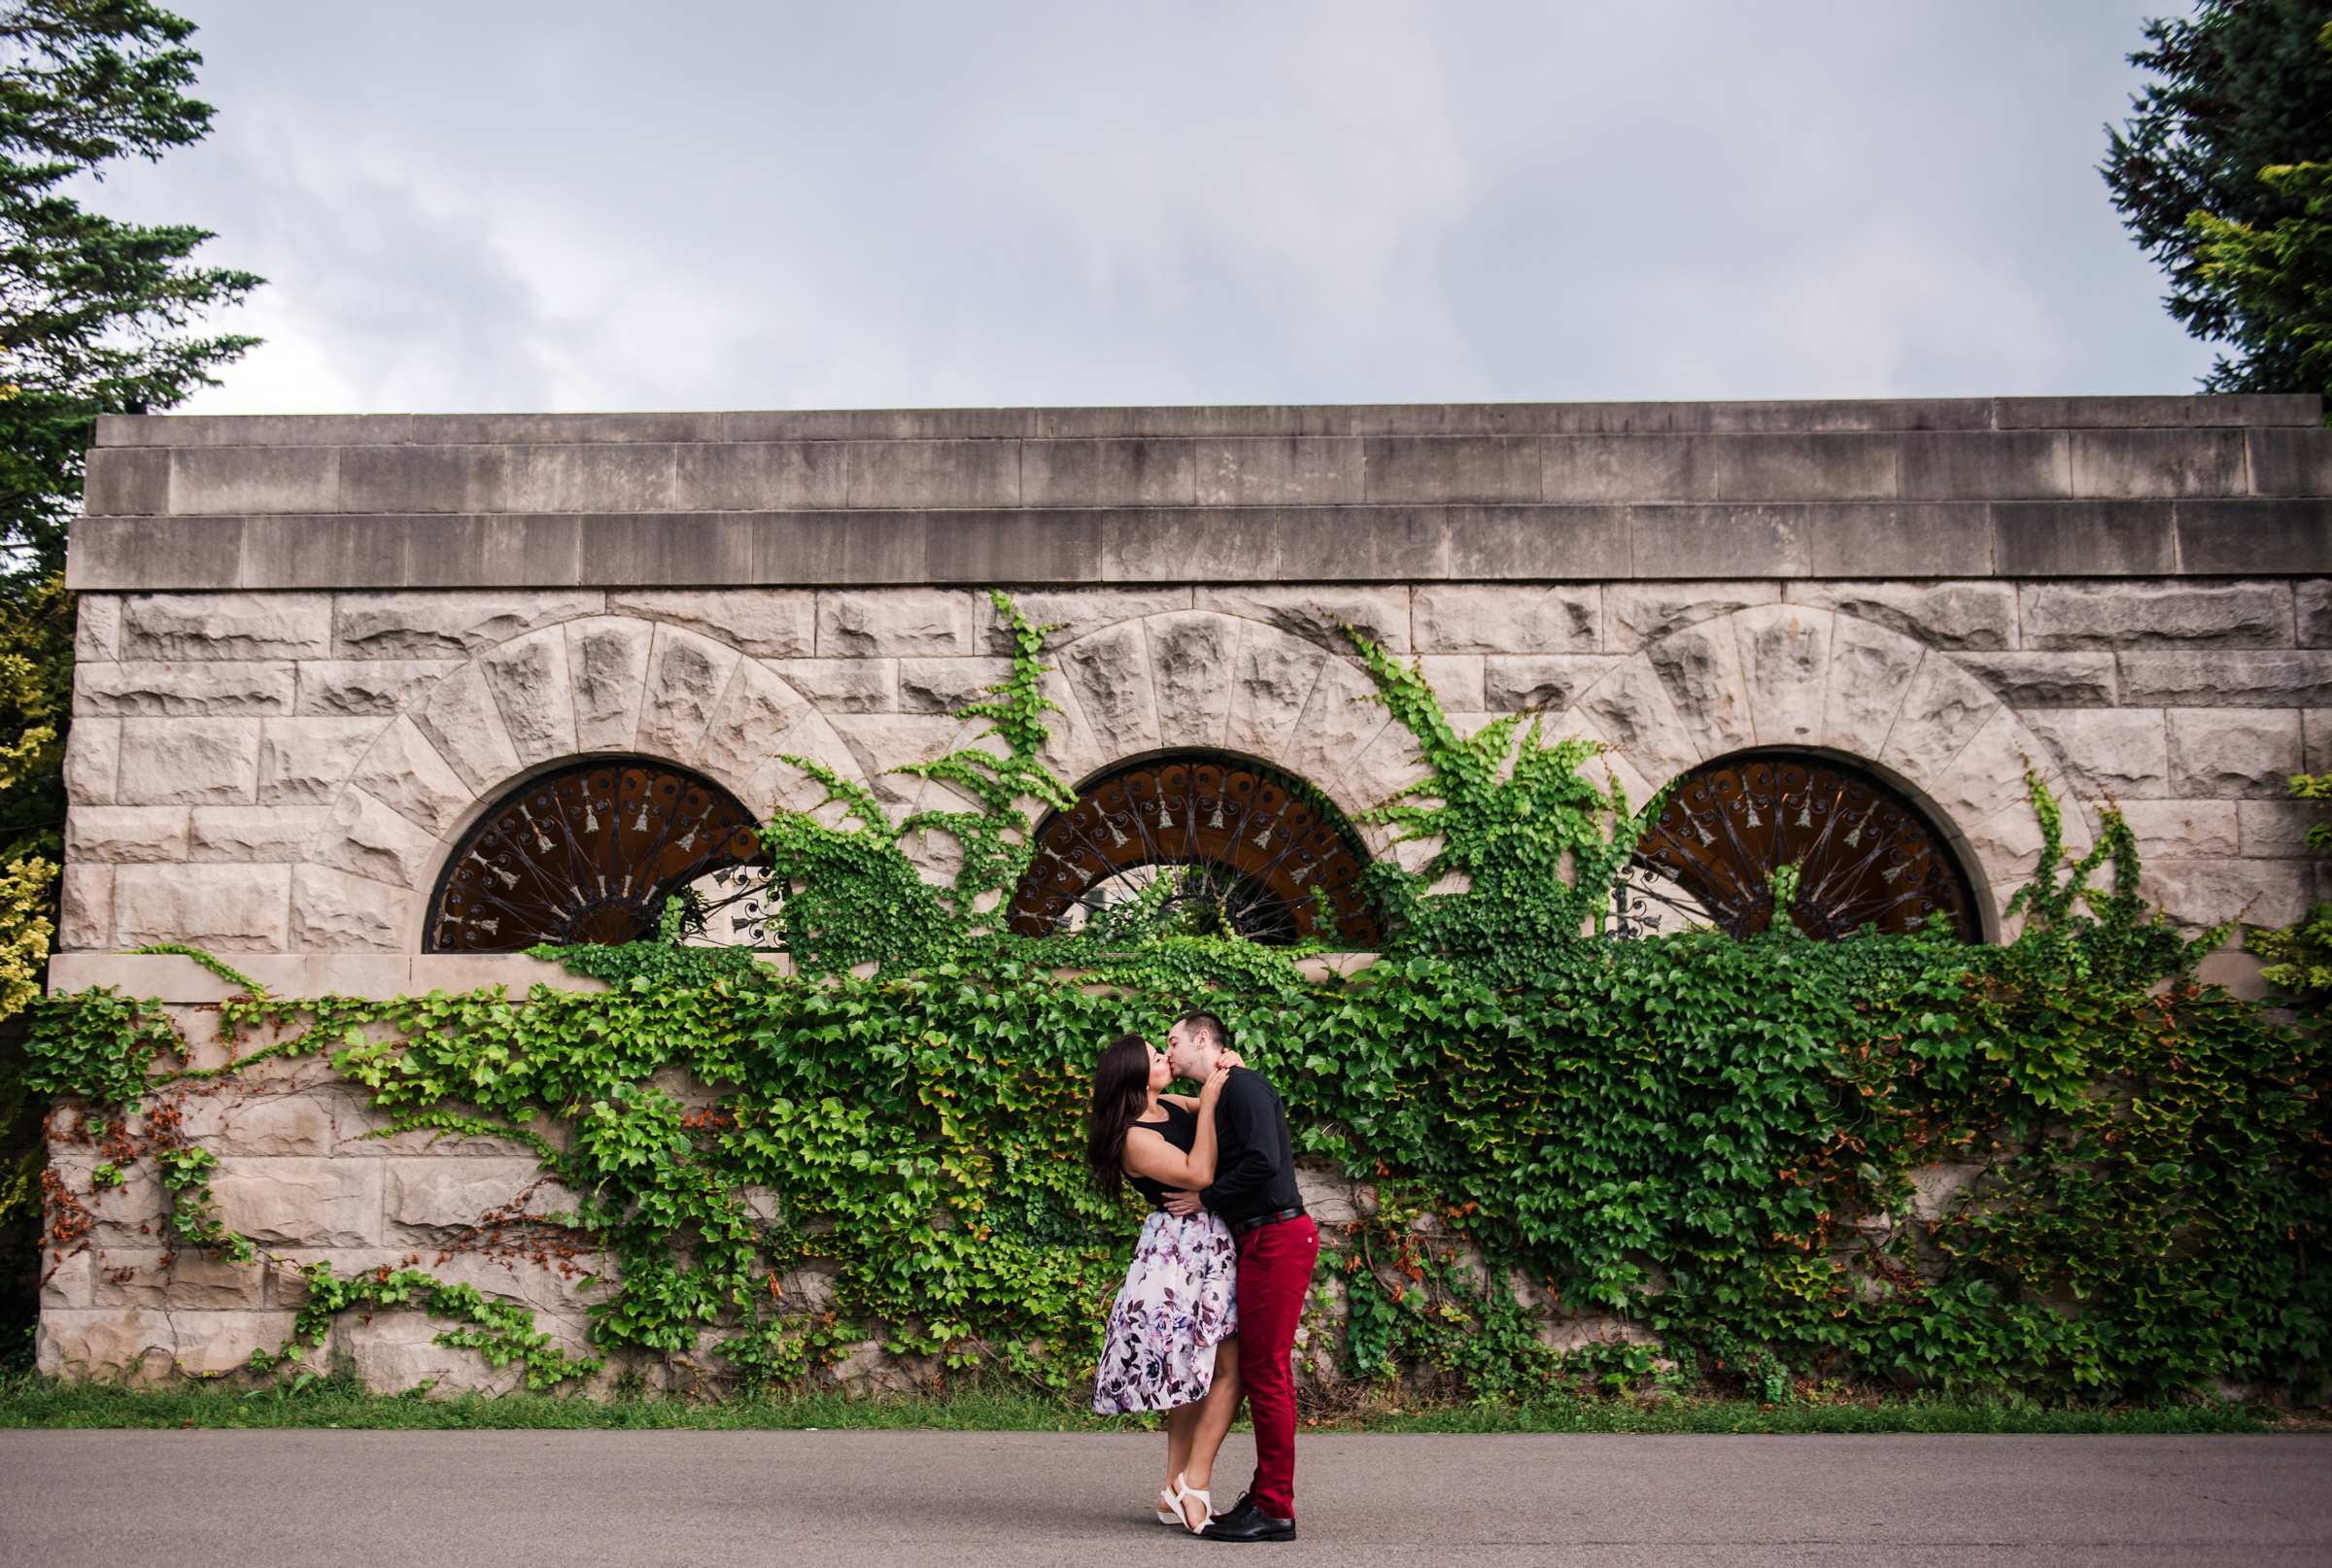 George_Eastman_House_Rochester_Engagement_Session_JILL_STUDIO_Rochester_NY_Photographer_DSC_6385.jpg